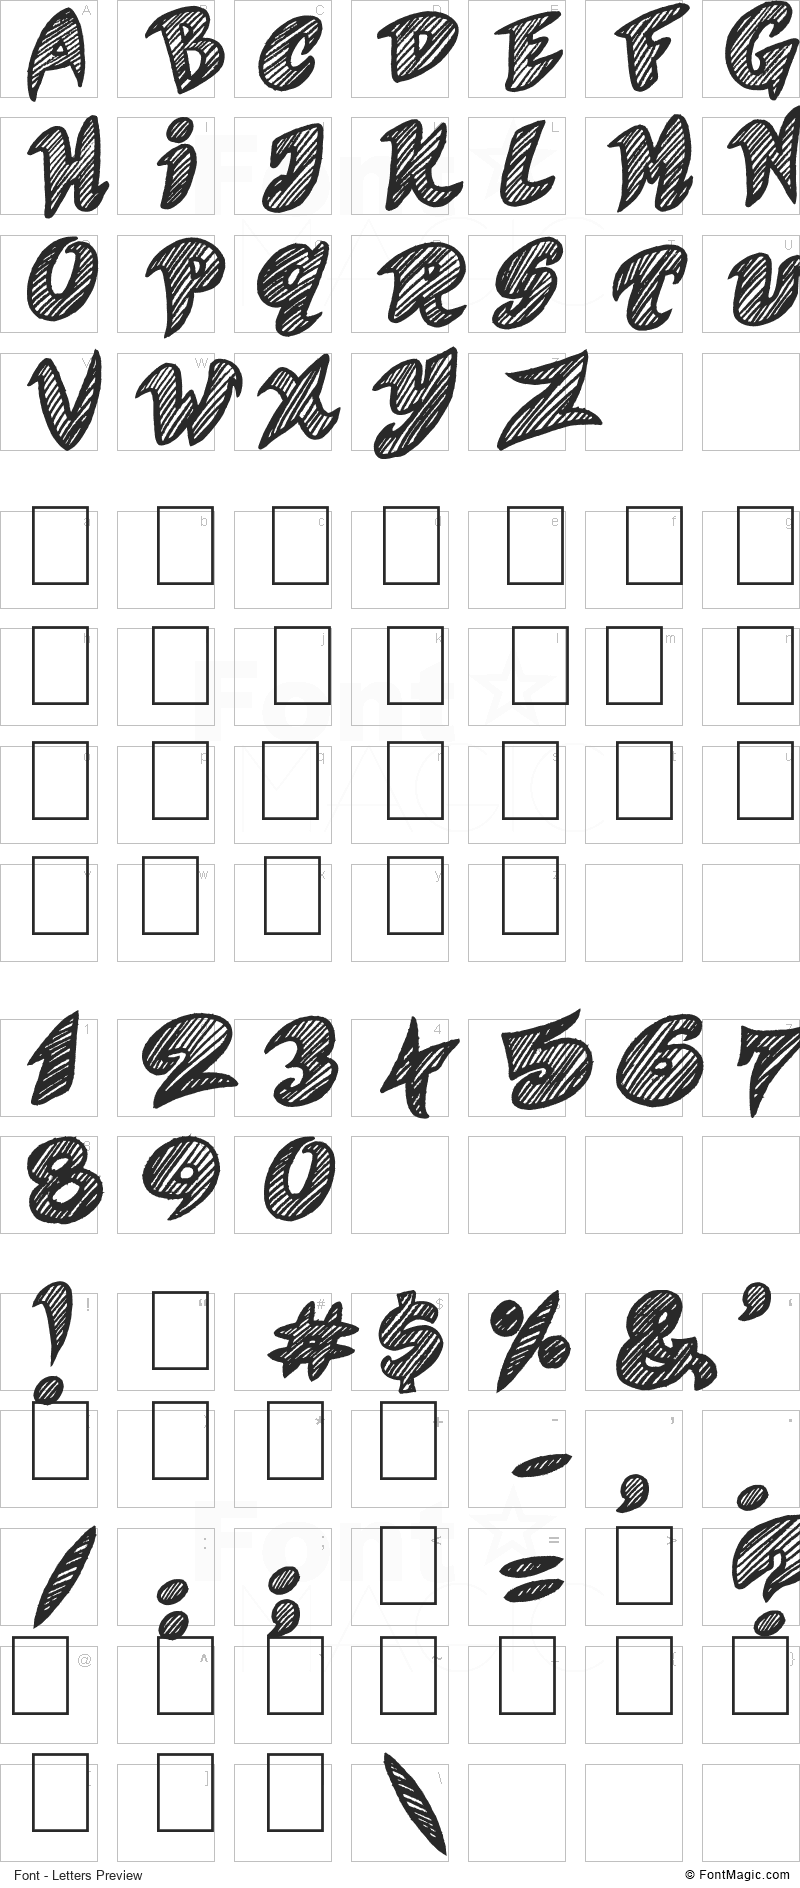 Quicker Font - All Latters Preview Chart